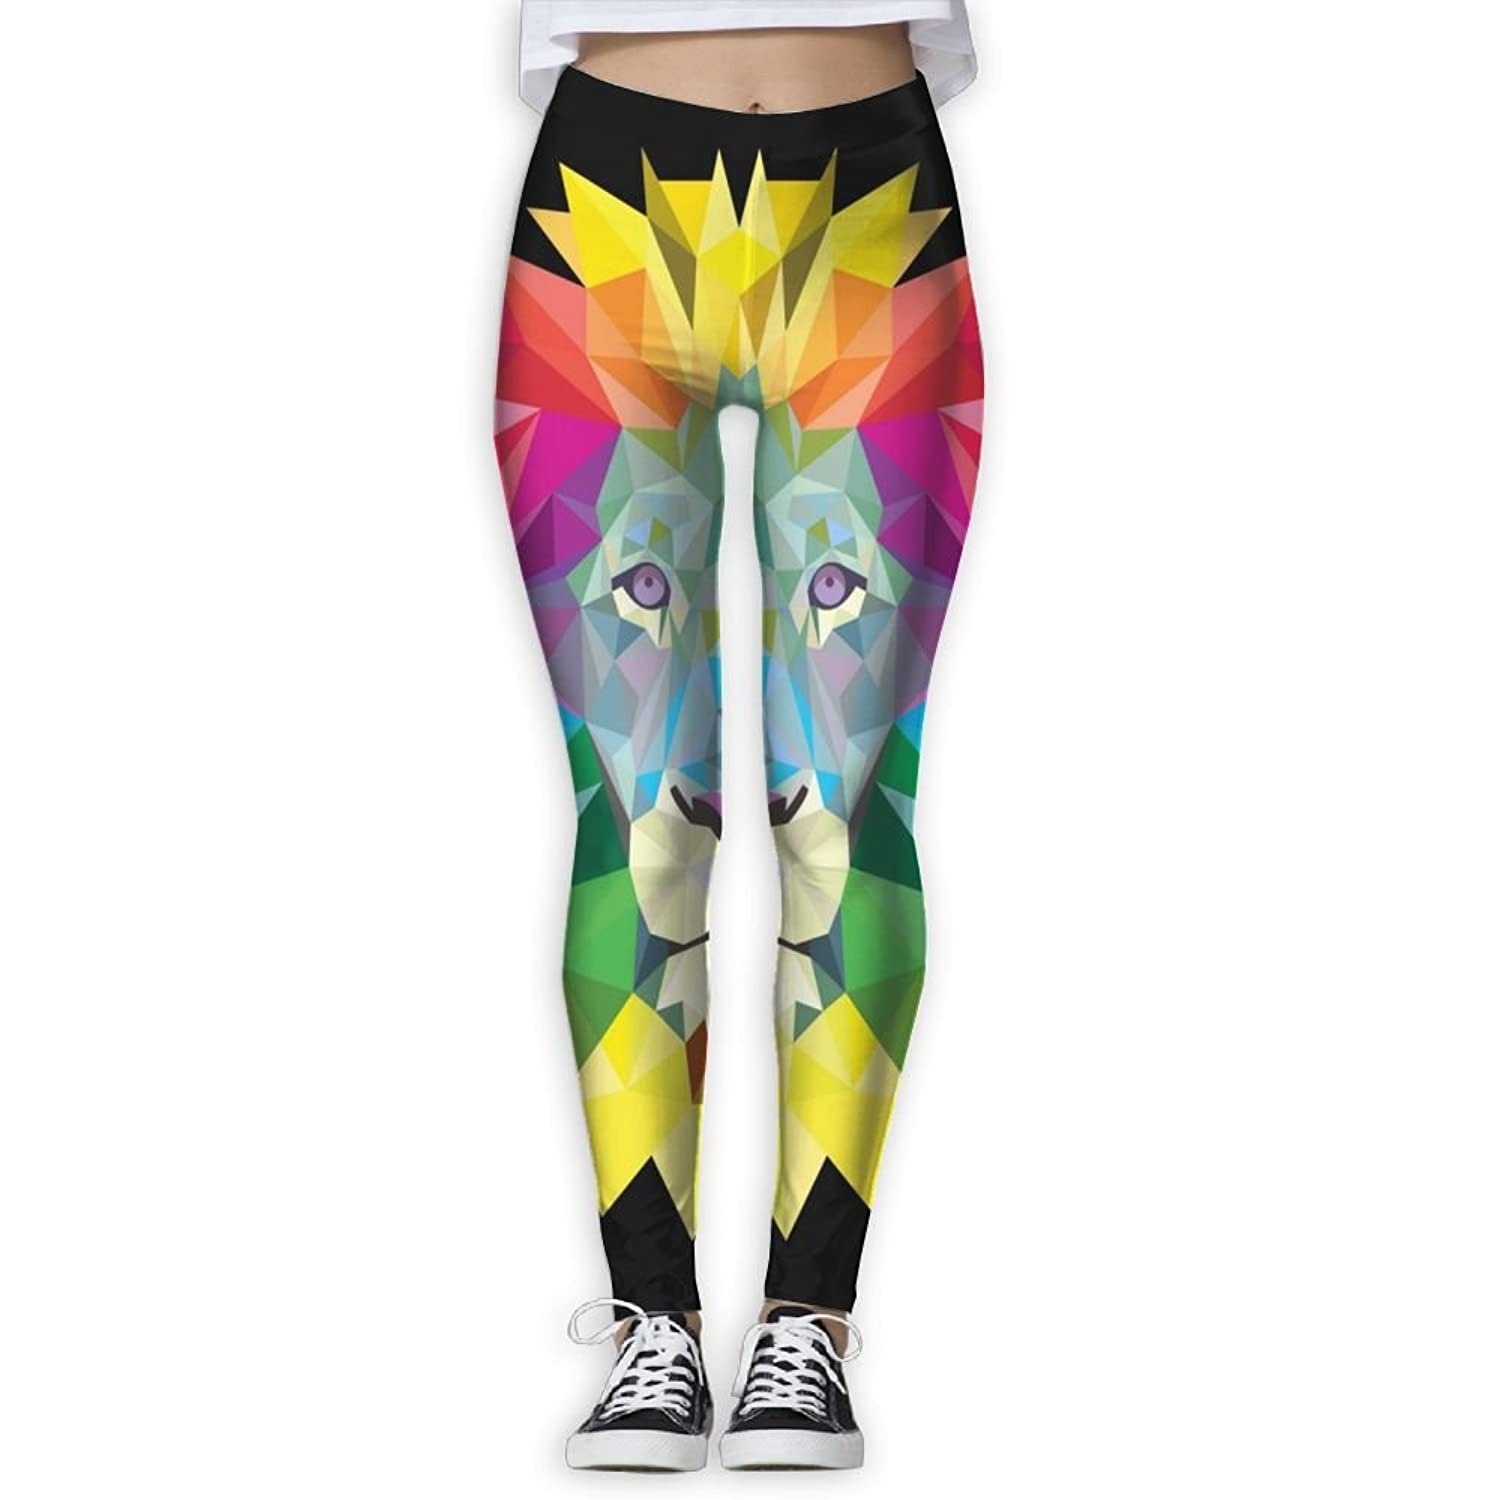 Futong Huaxia colorful Lion Women's Stretchy Leggings Skinny Pants For Yoga Running Pilates Gym